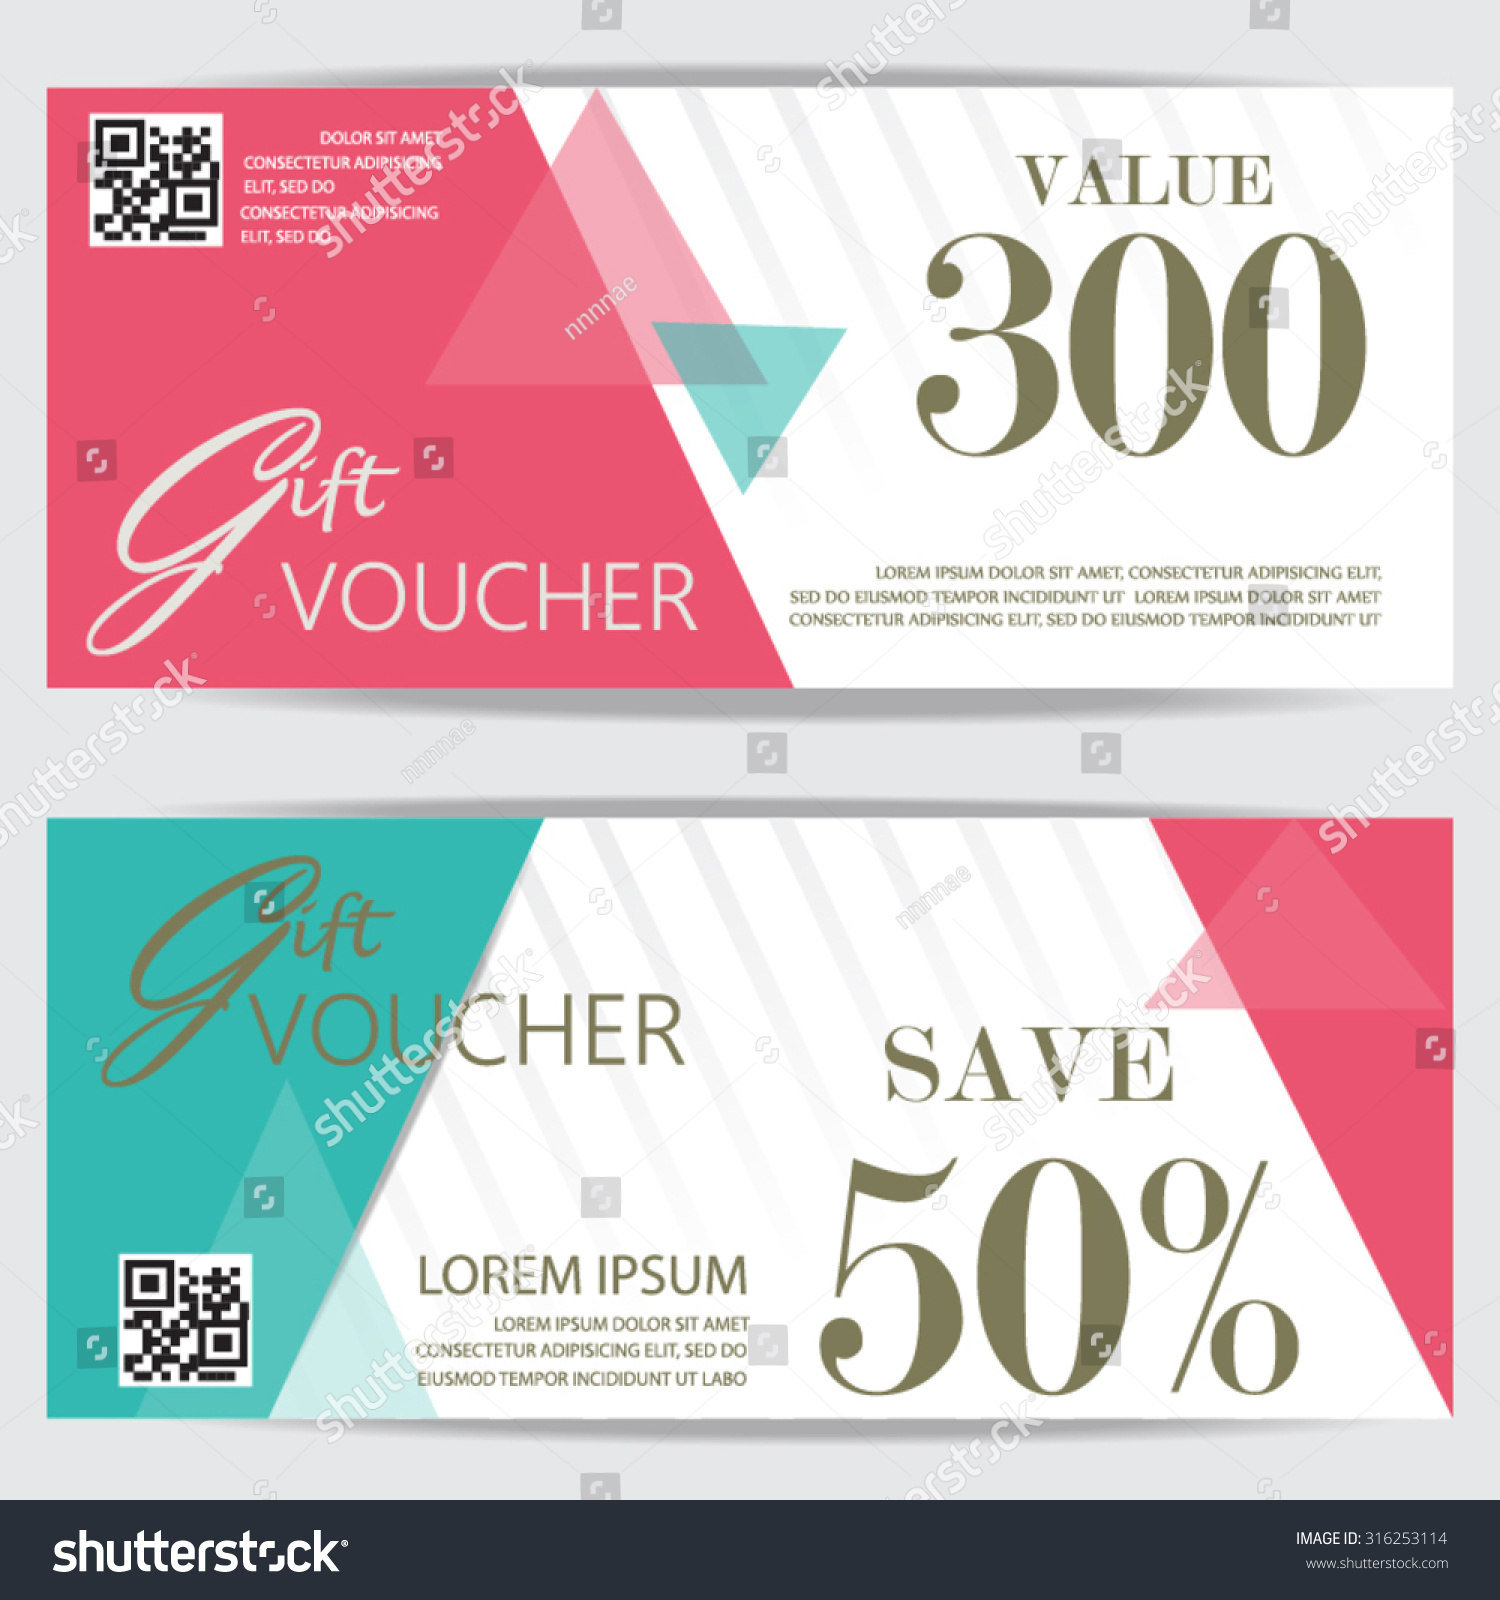 gift voucher certificate coupon template cute stock vector gift voucher certificate coupon template cute and modern style design for girl and w